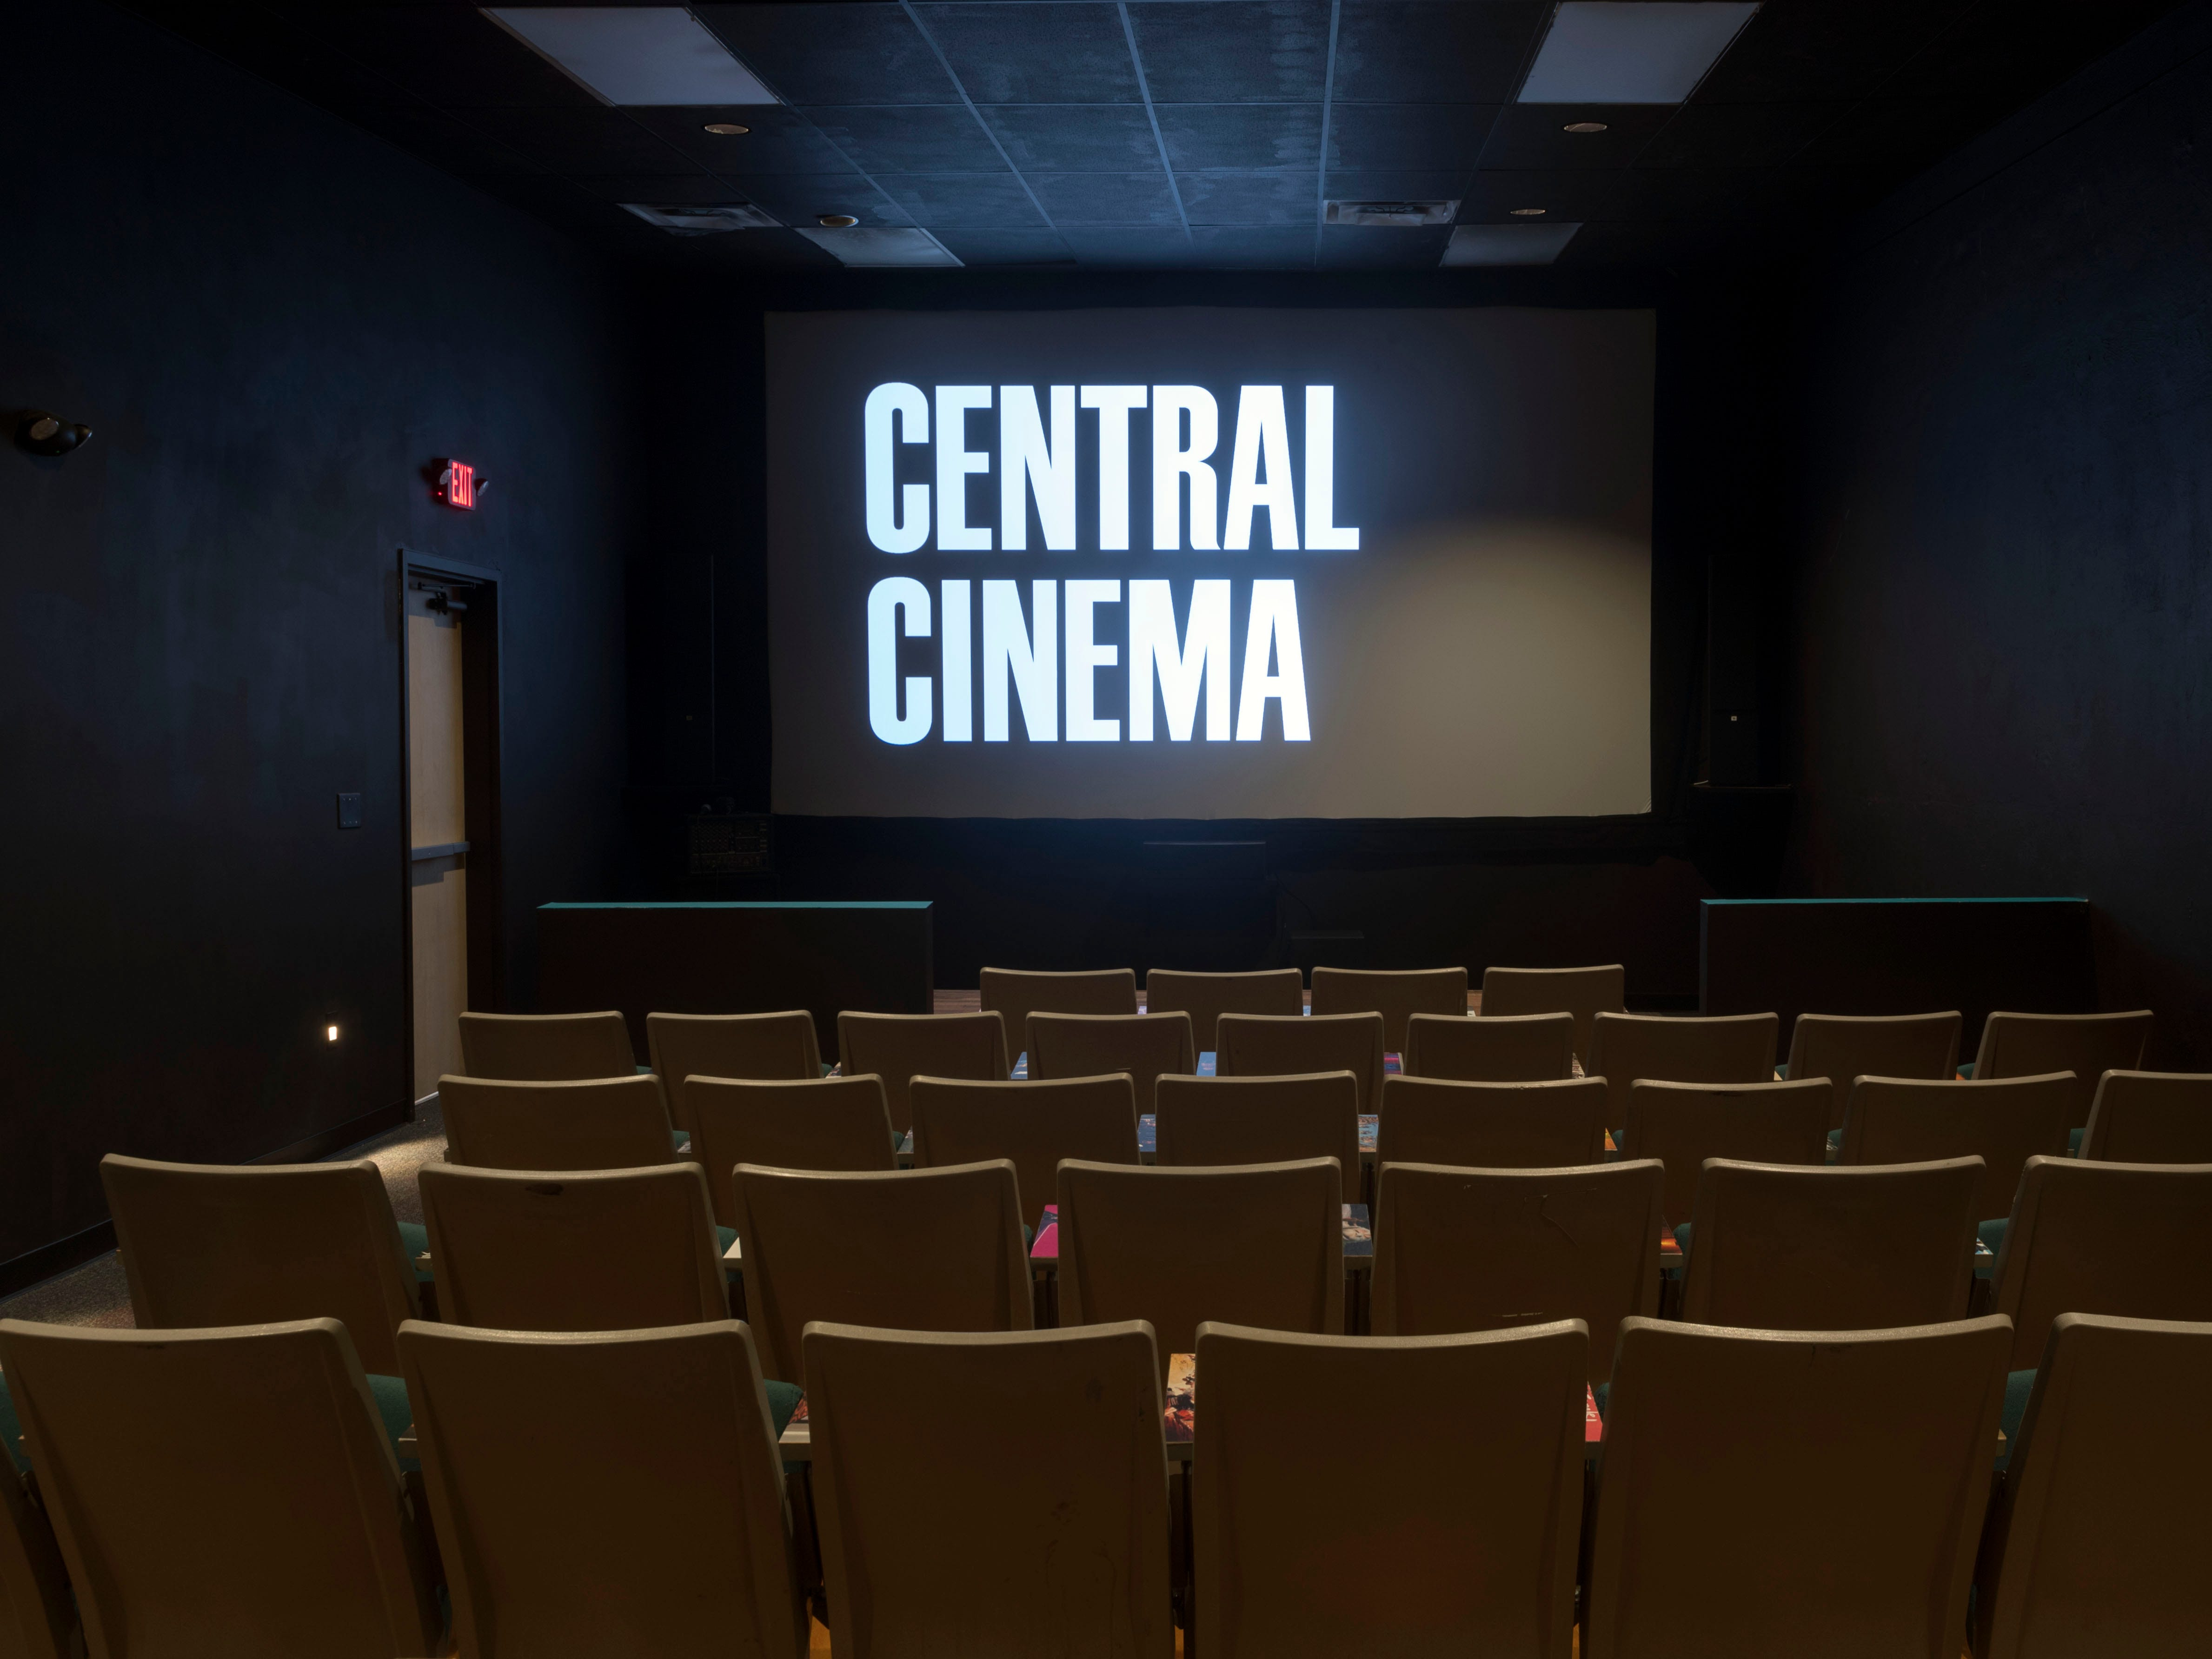 Central Cinema is a single-screen independent movie theater in Happy Holler. The theater will screen first-run indies and documentaries along with classic movies.